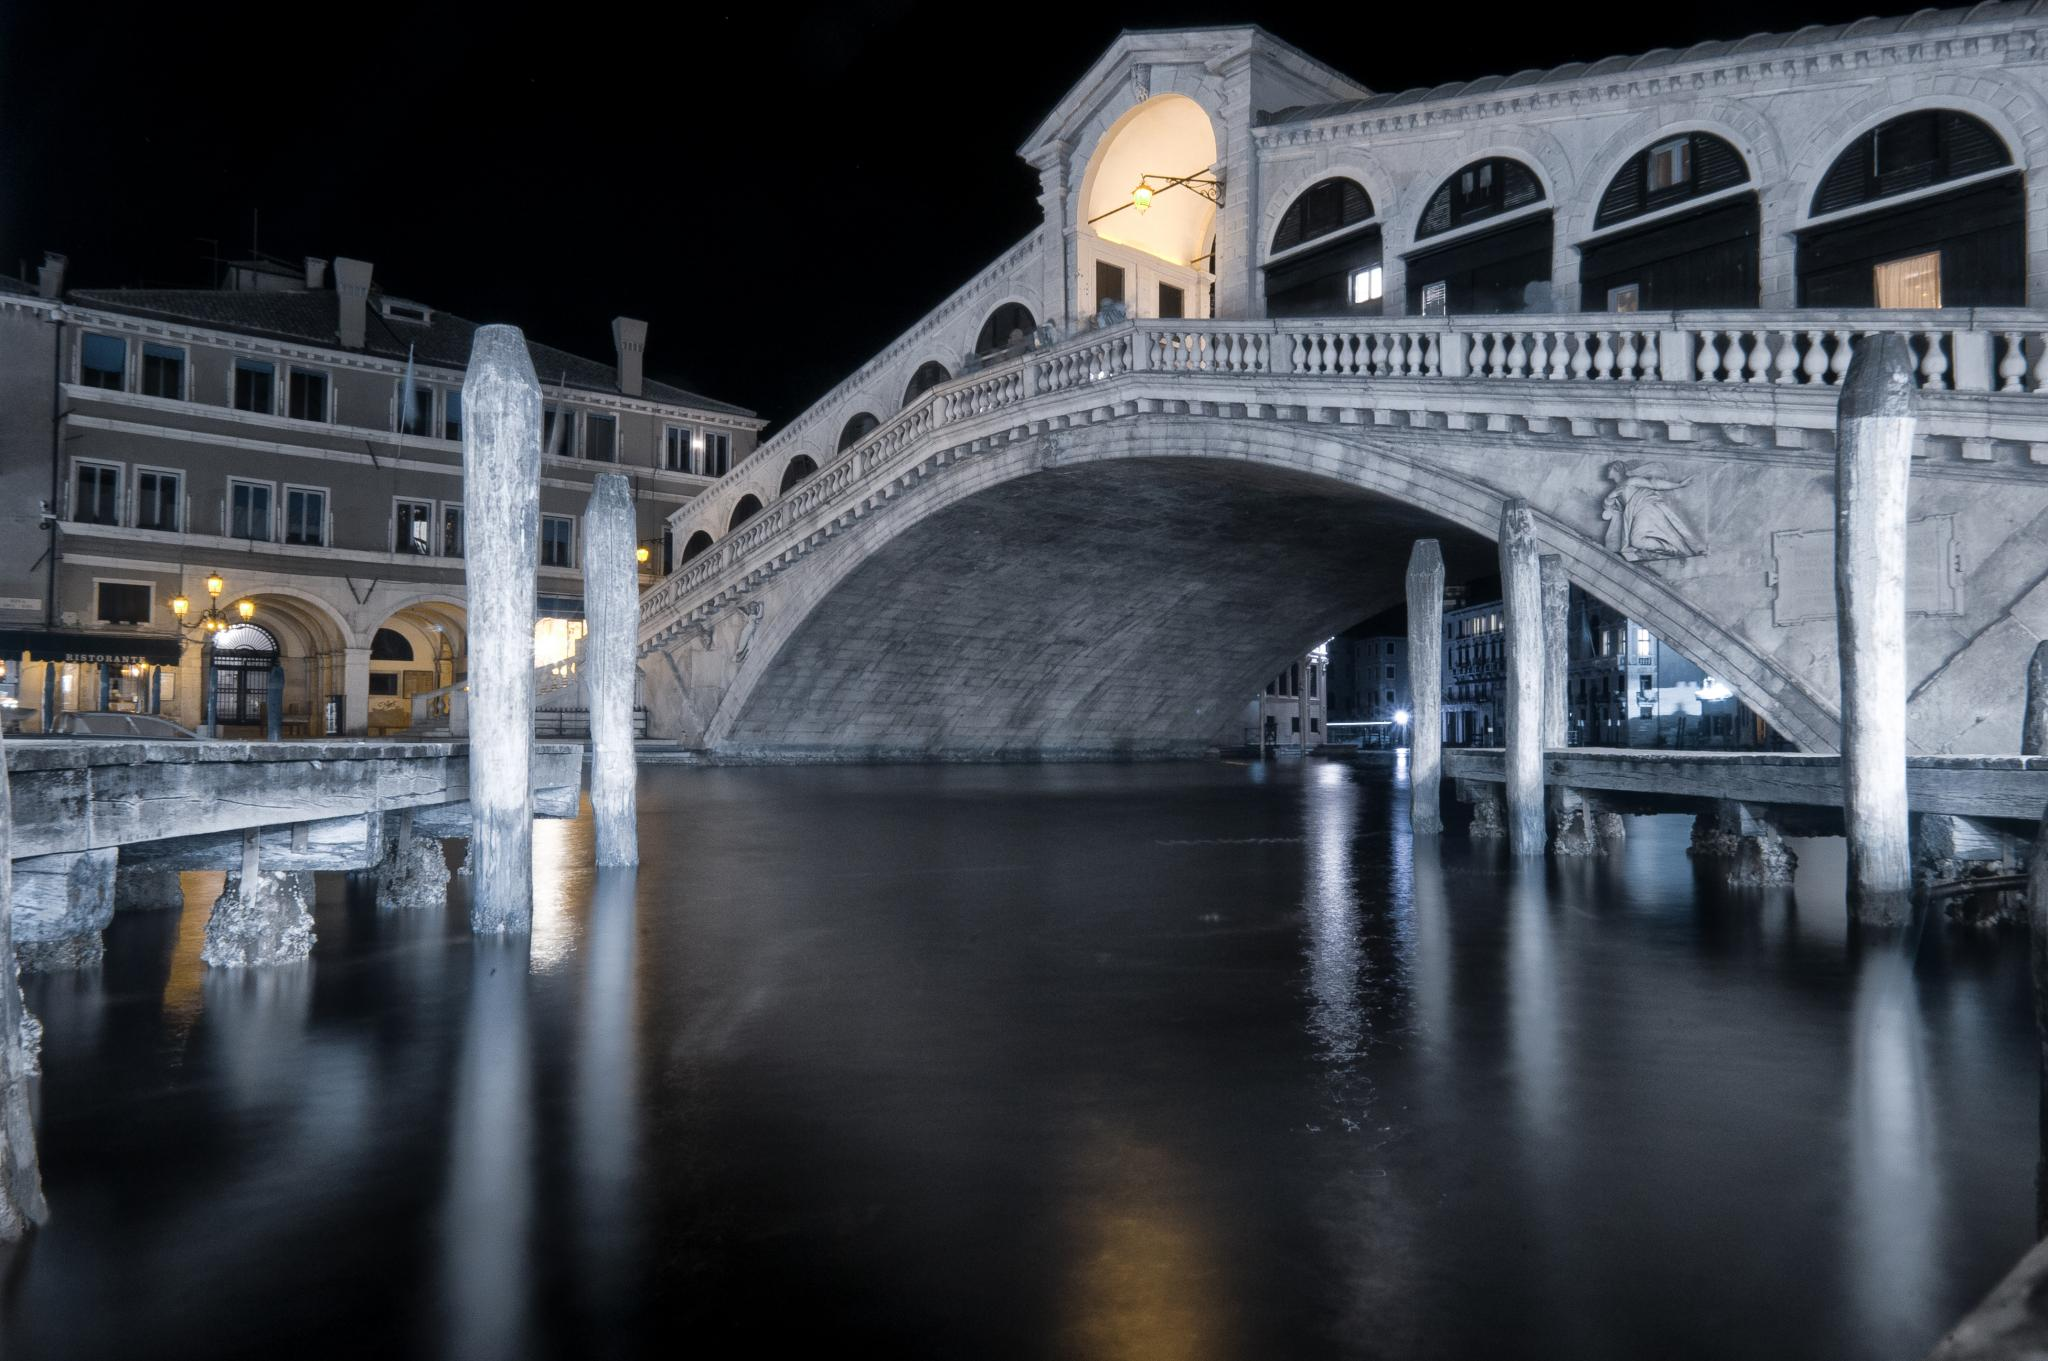 Venezia By Night by Domenico Addotta